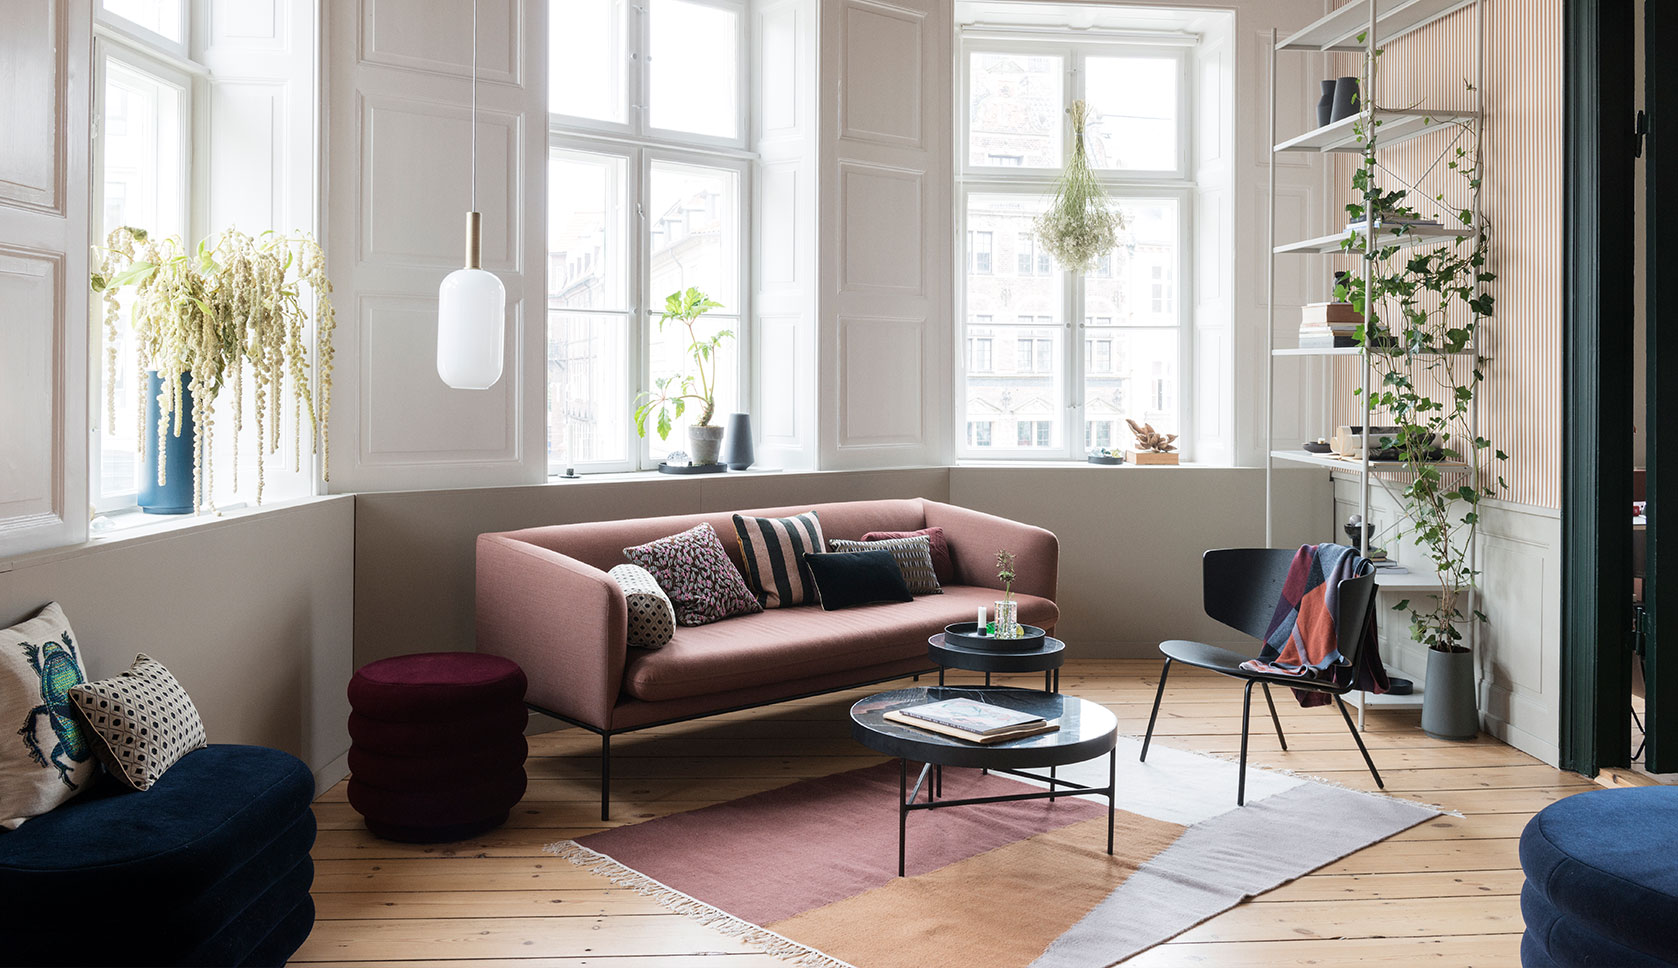 rue your pathway to stylish living decorating september 13 2017 the home by ferm living